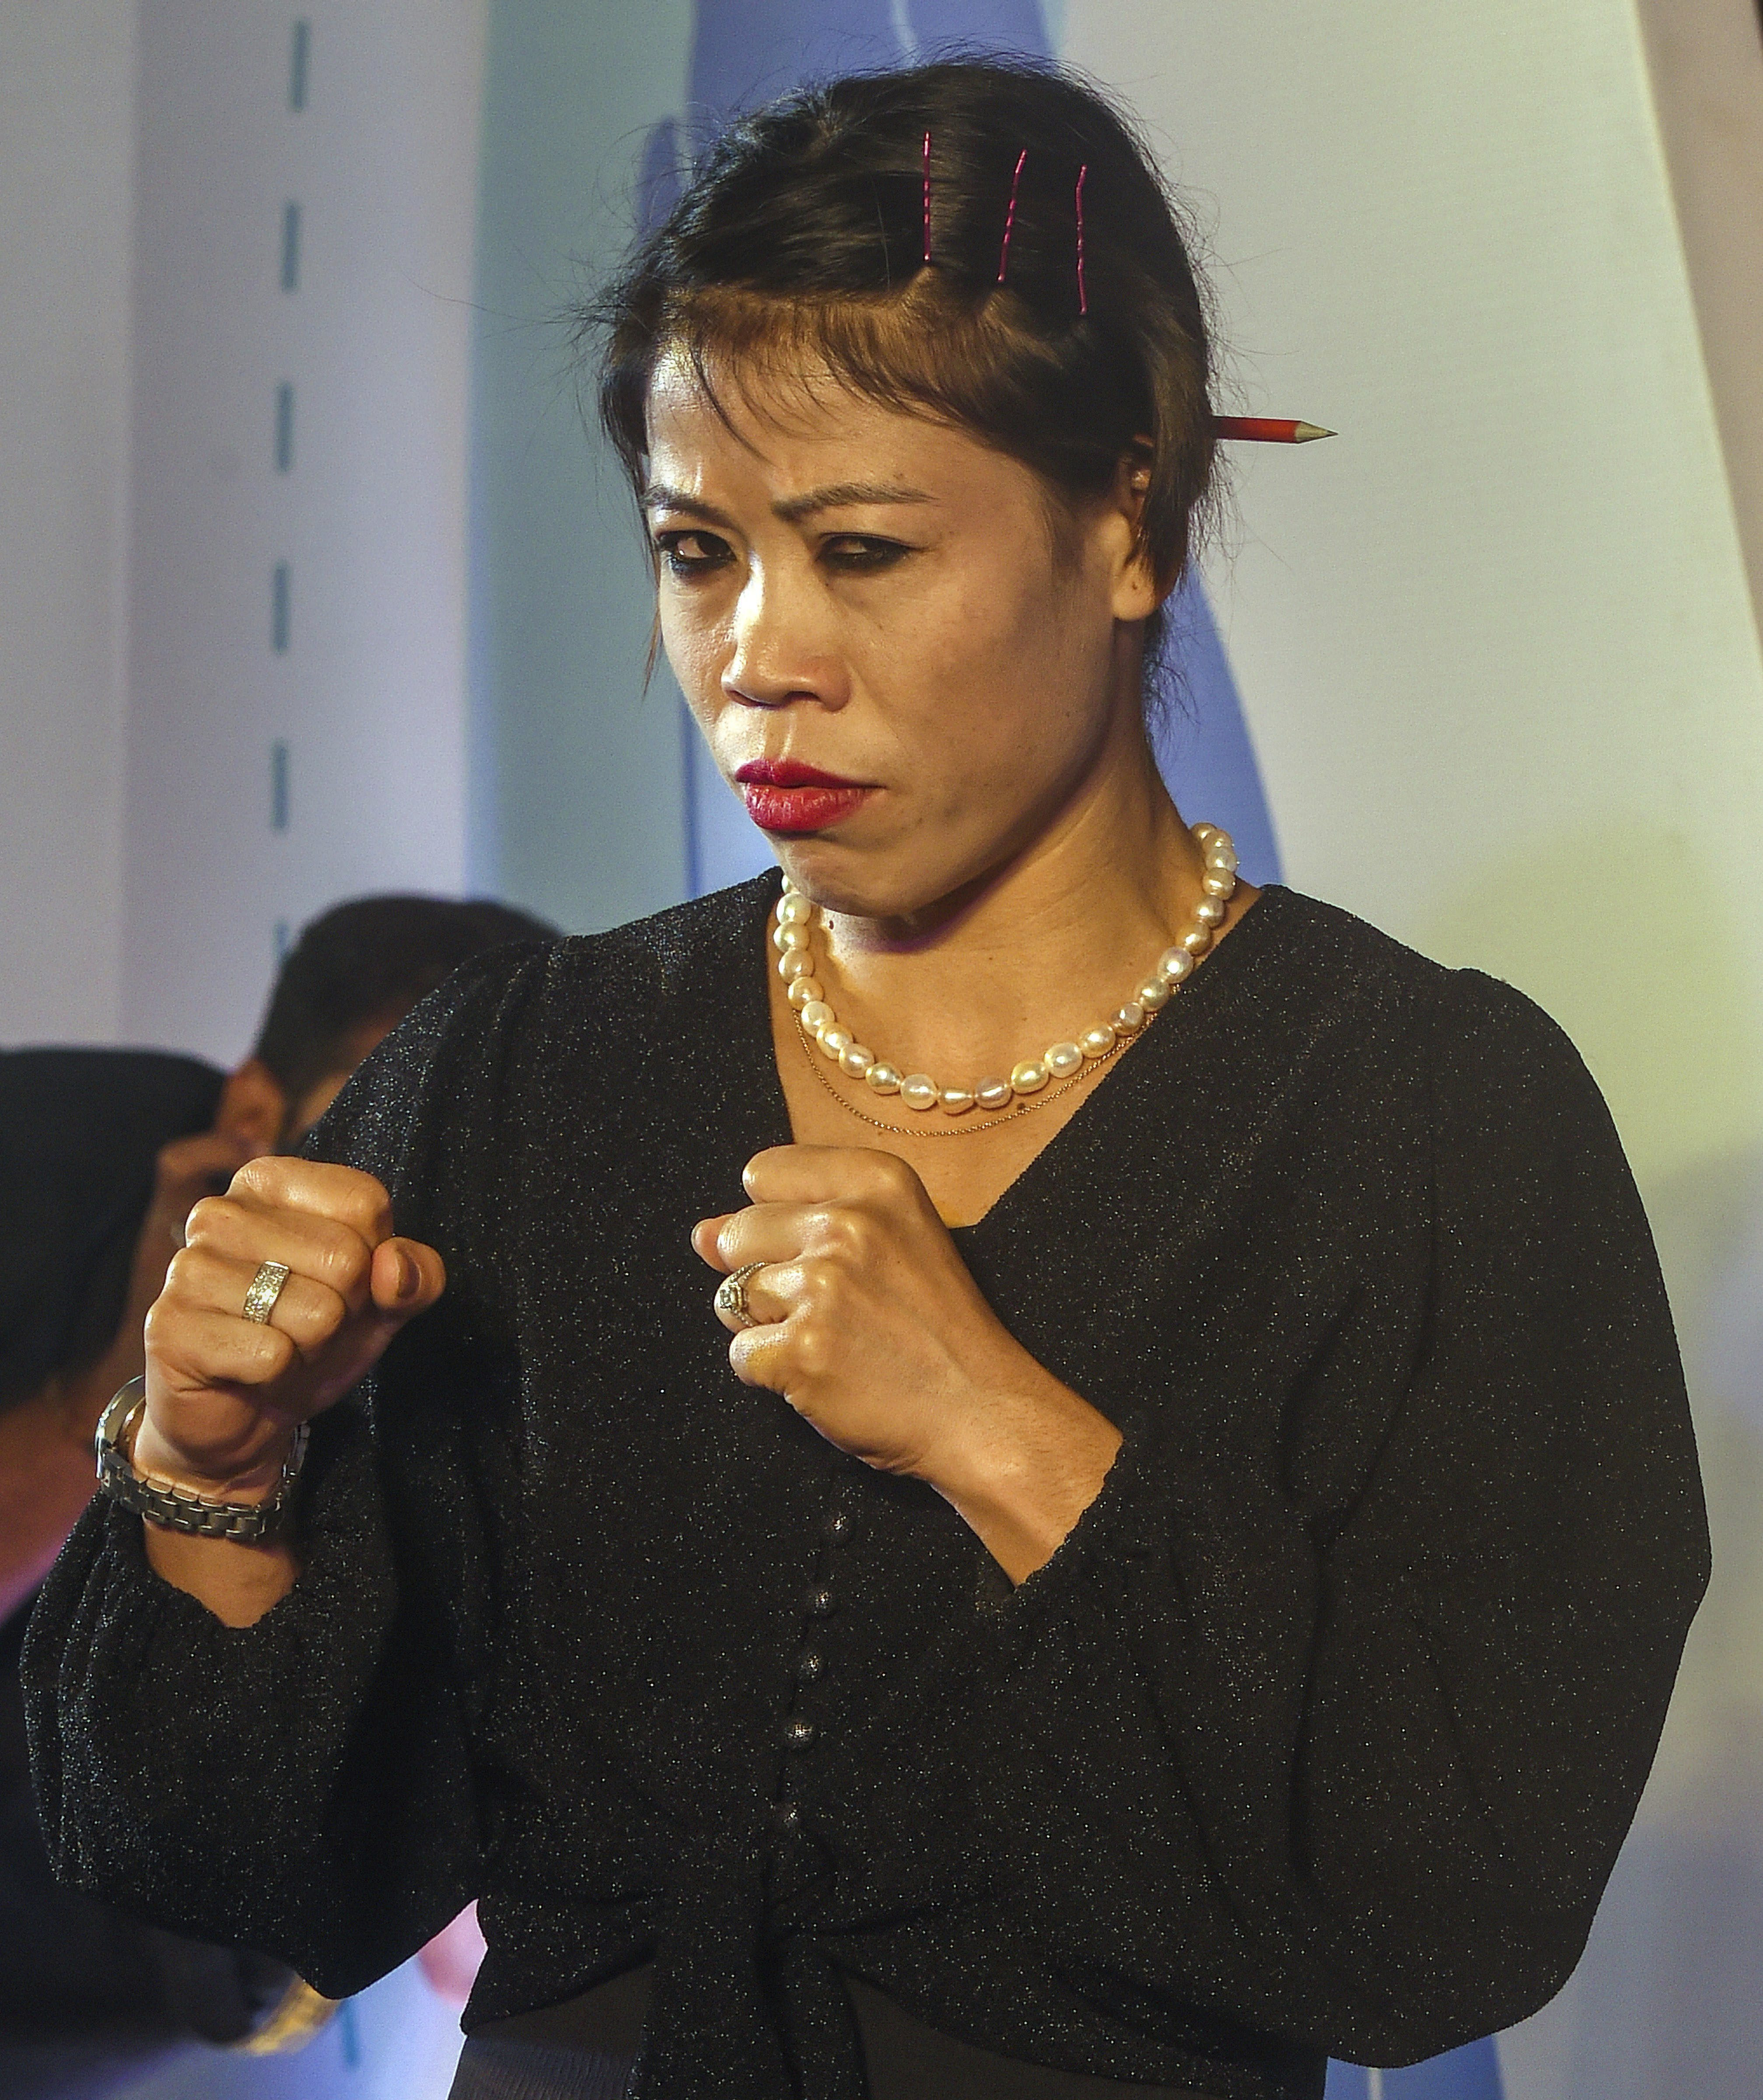 Six-time world champion boxer MC Mary Kom during an event by Indian Federation of Sports Gaming (IFSG) 'Stars of Tomorrow' for athlete support programme extended to 13 promising young athletes, in Mumbai - PTI